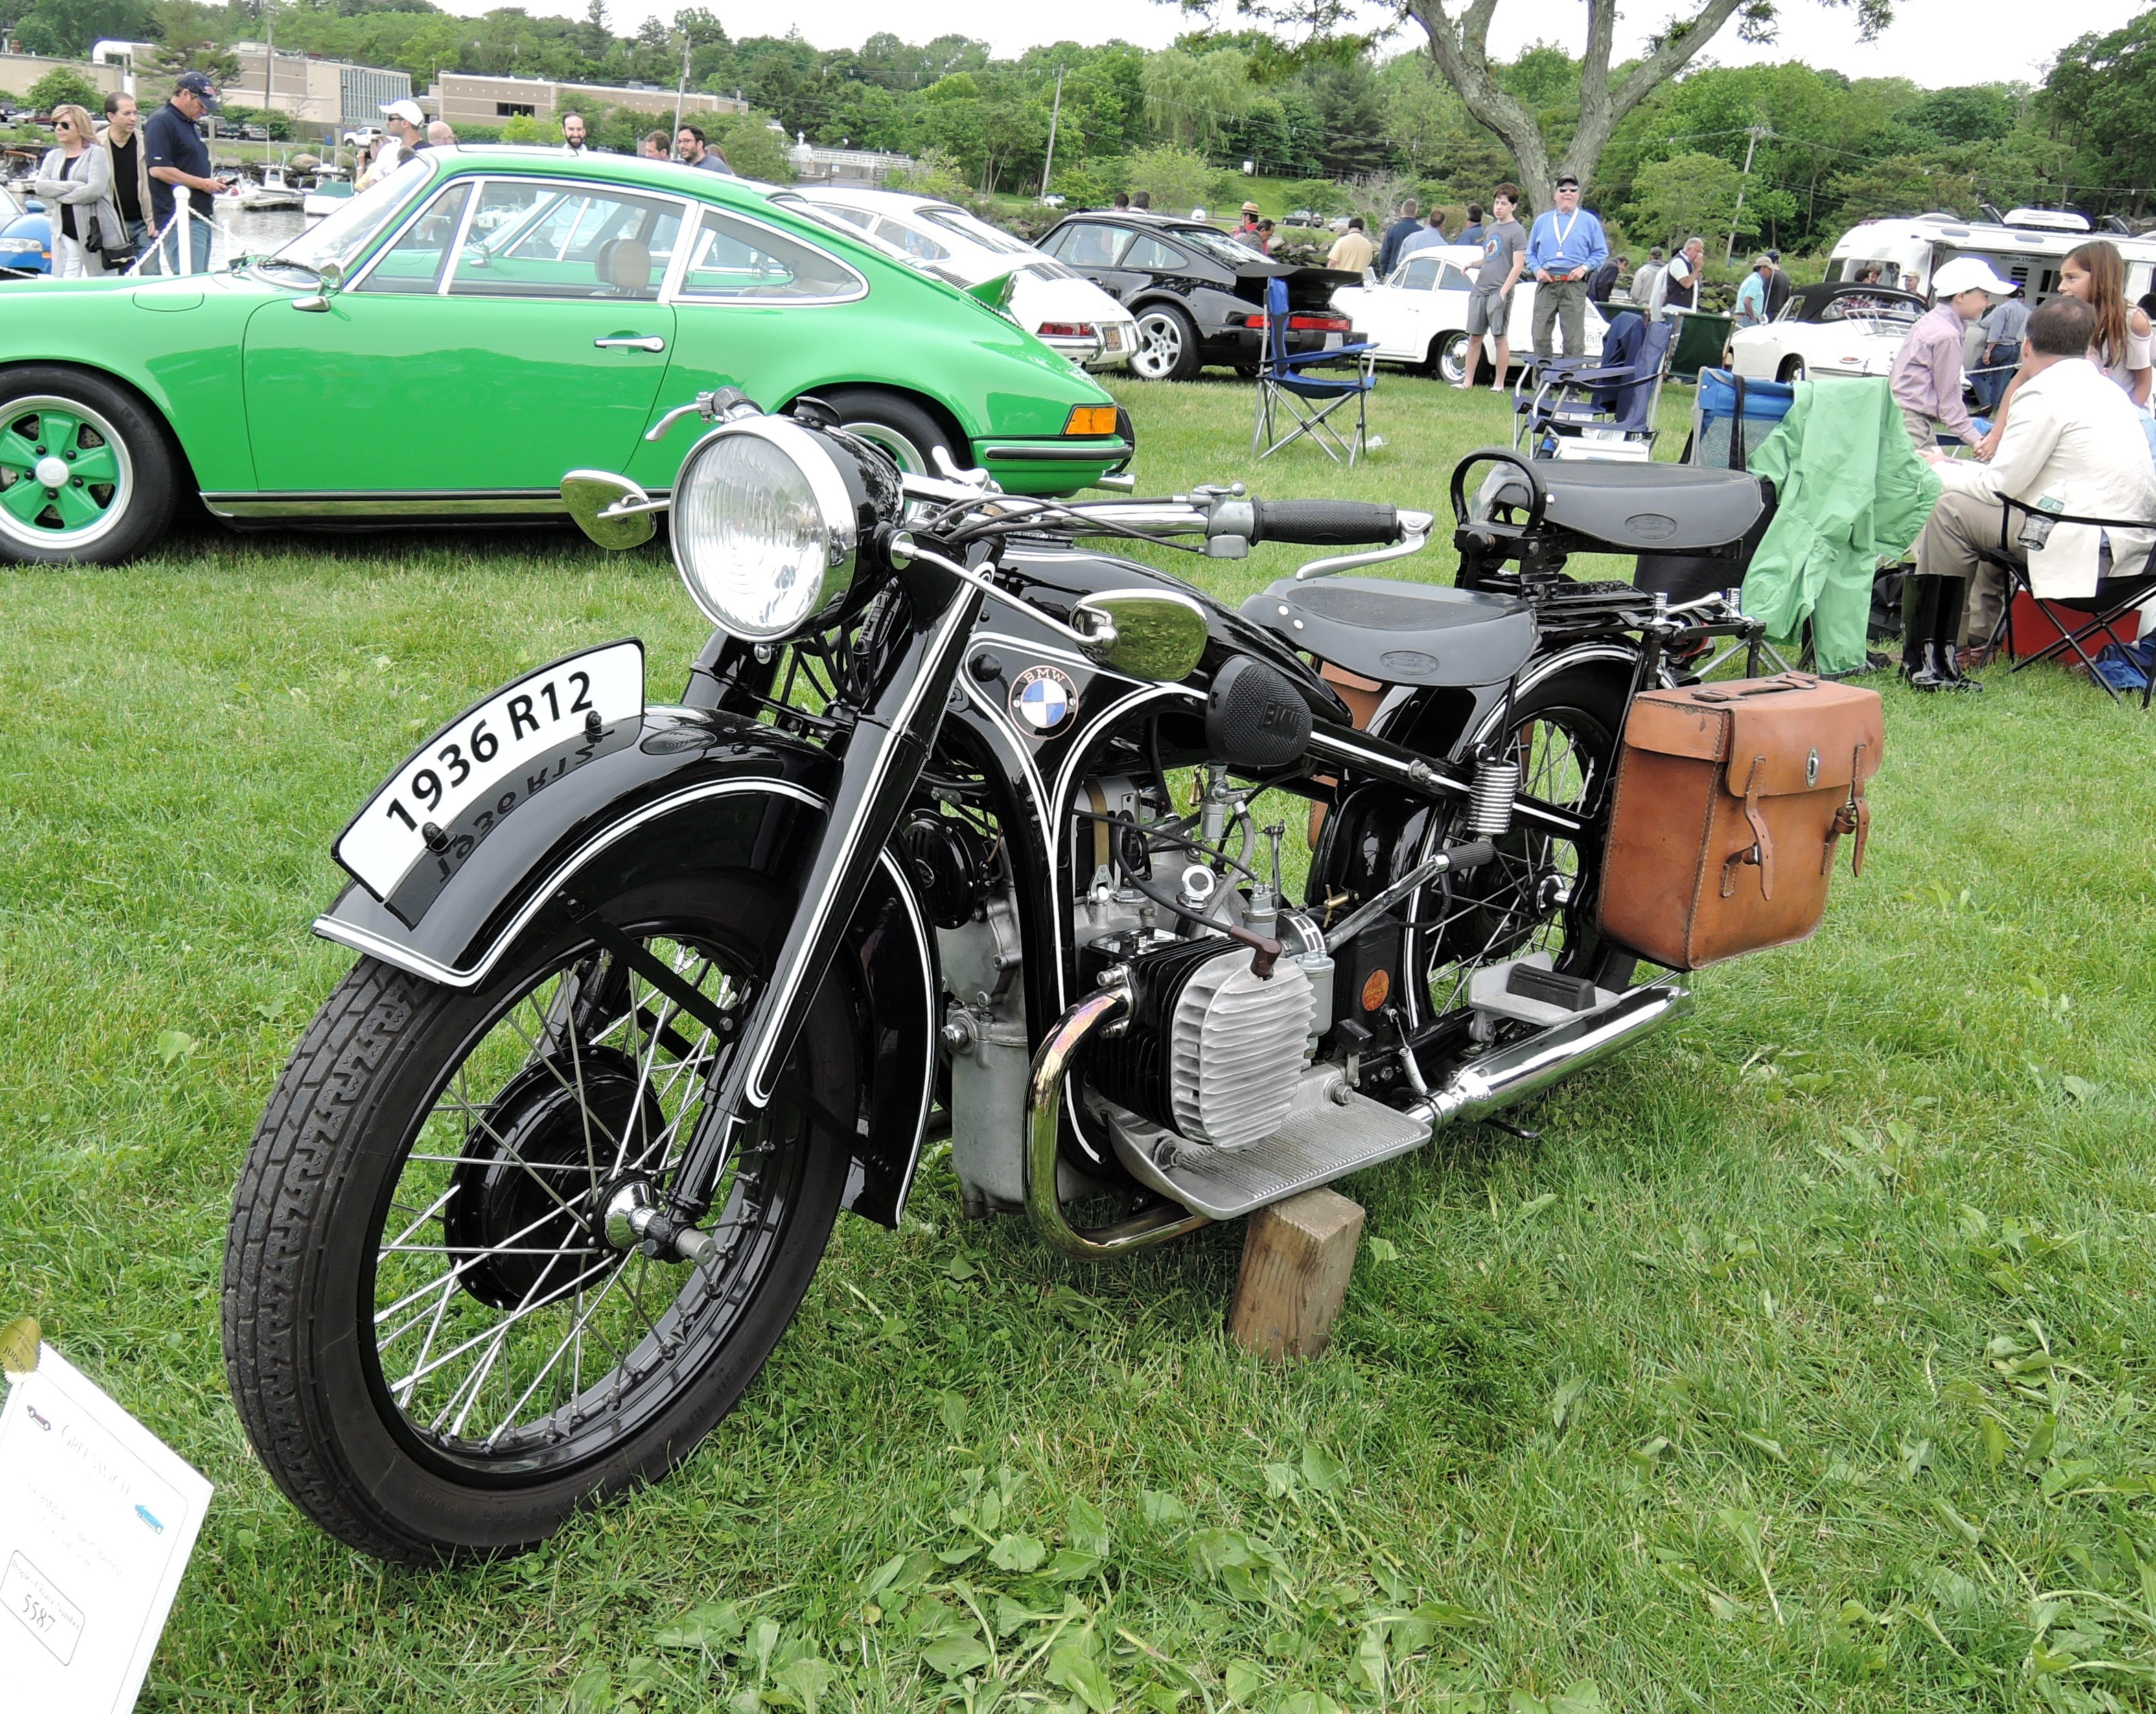 1936 BMW R12 Sport Touring Motorcycle - Greenwich Concours d'Elegance 2017